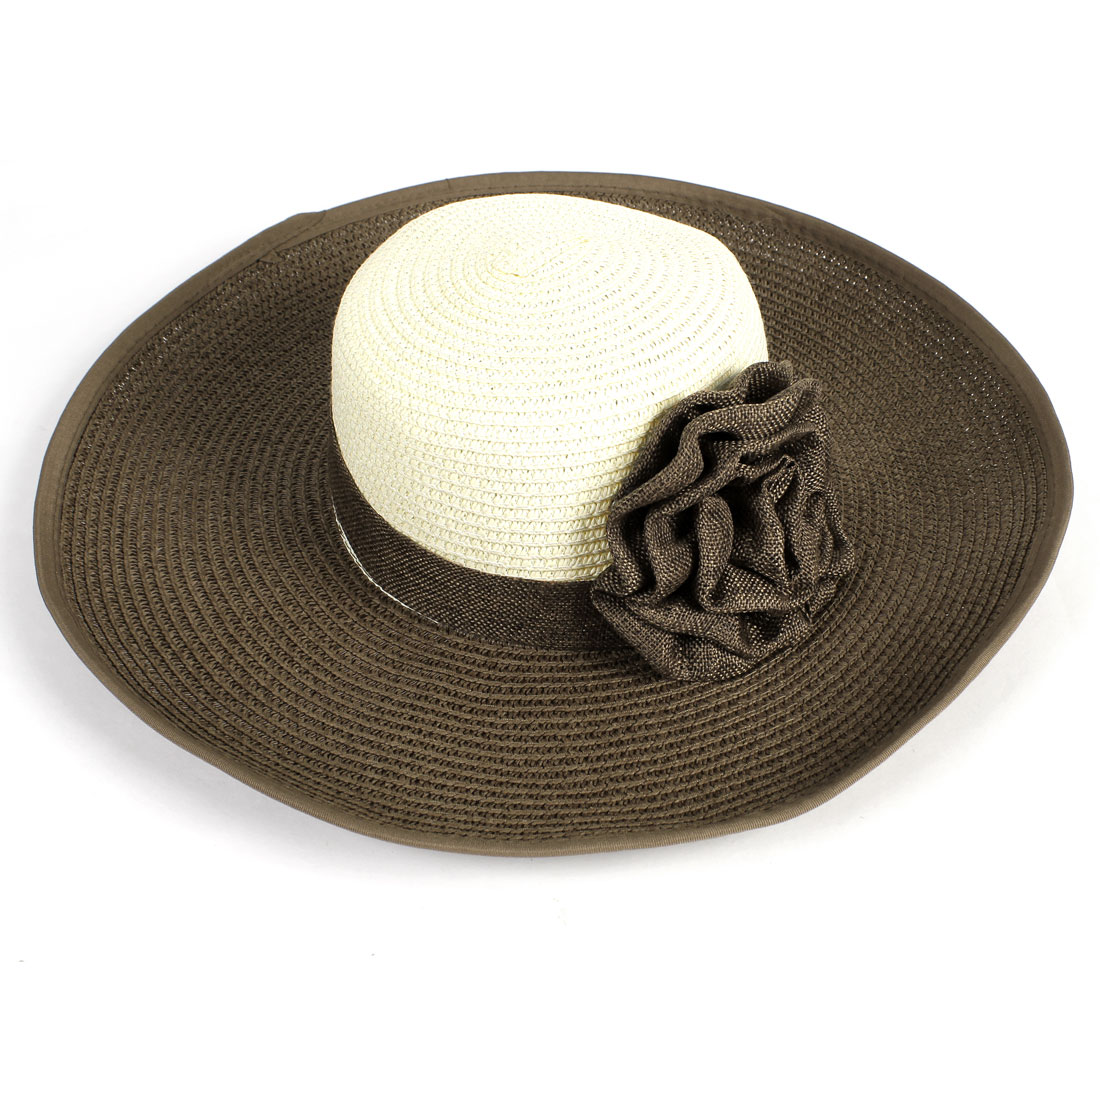 Woman Nylon Flower Detail Wide Brim Beach Straw Hat Cap Dark Brown Beige